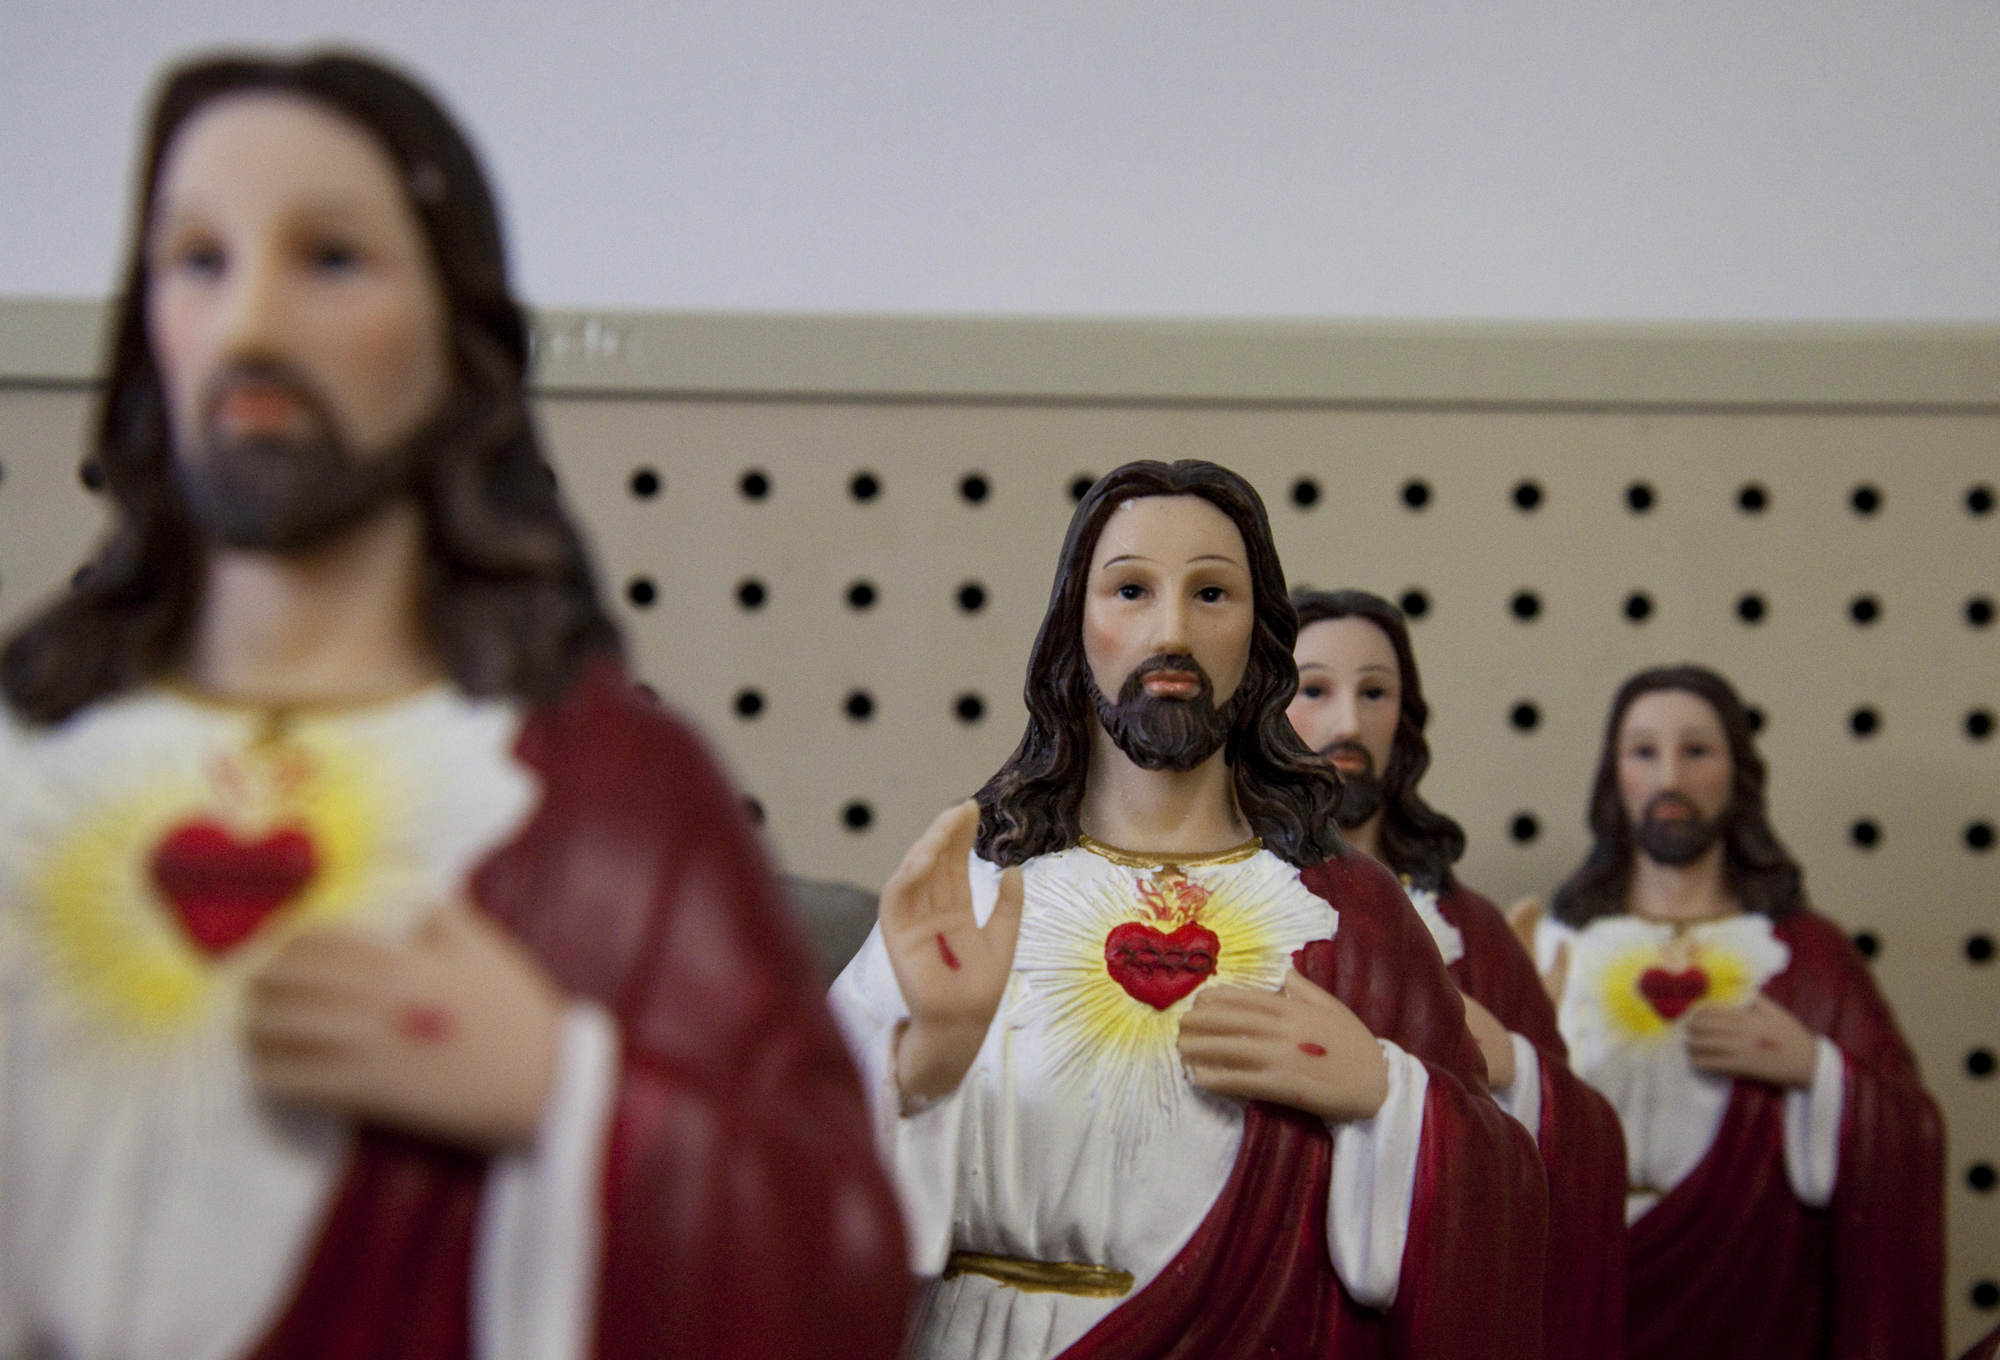 Jesus statuettes sit on a shelf, for sale at $33.99 at the Atlantic Farmers' Market.